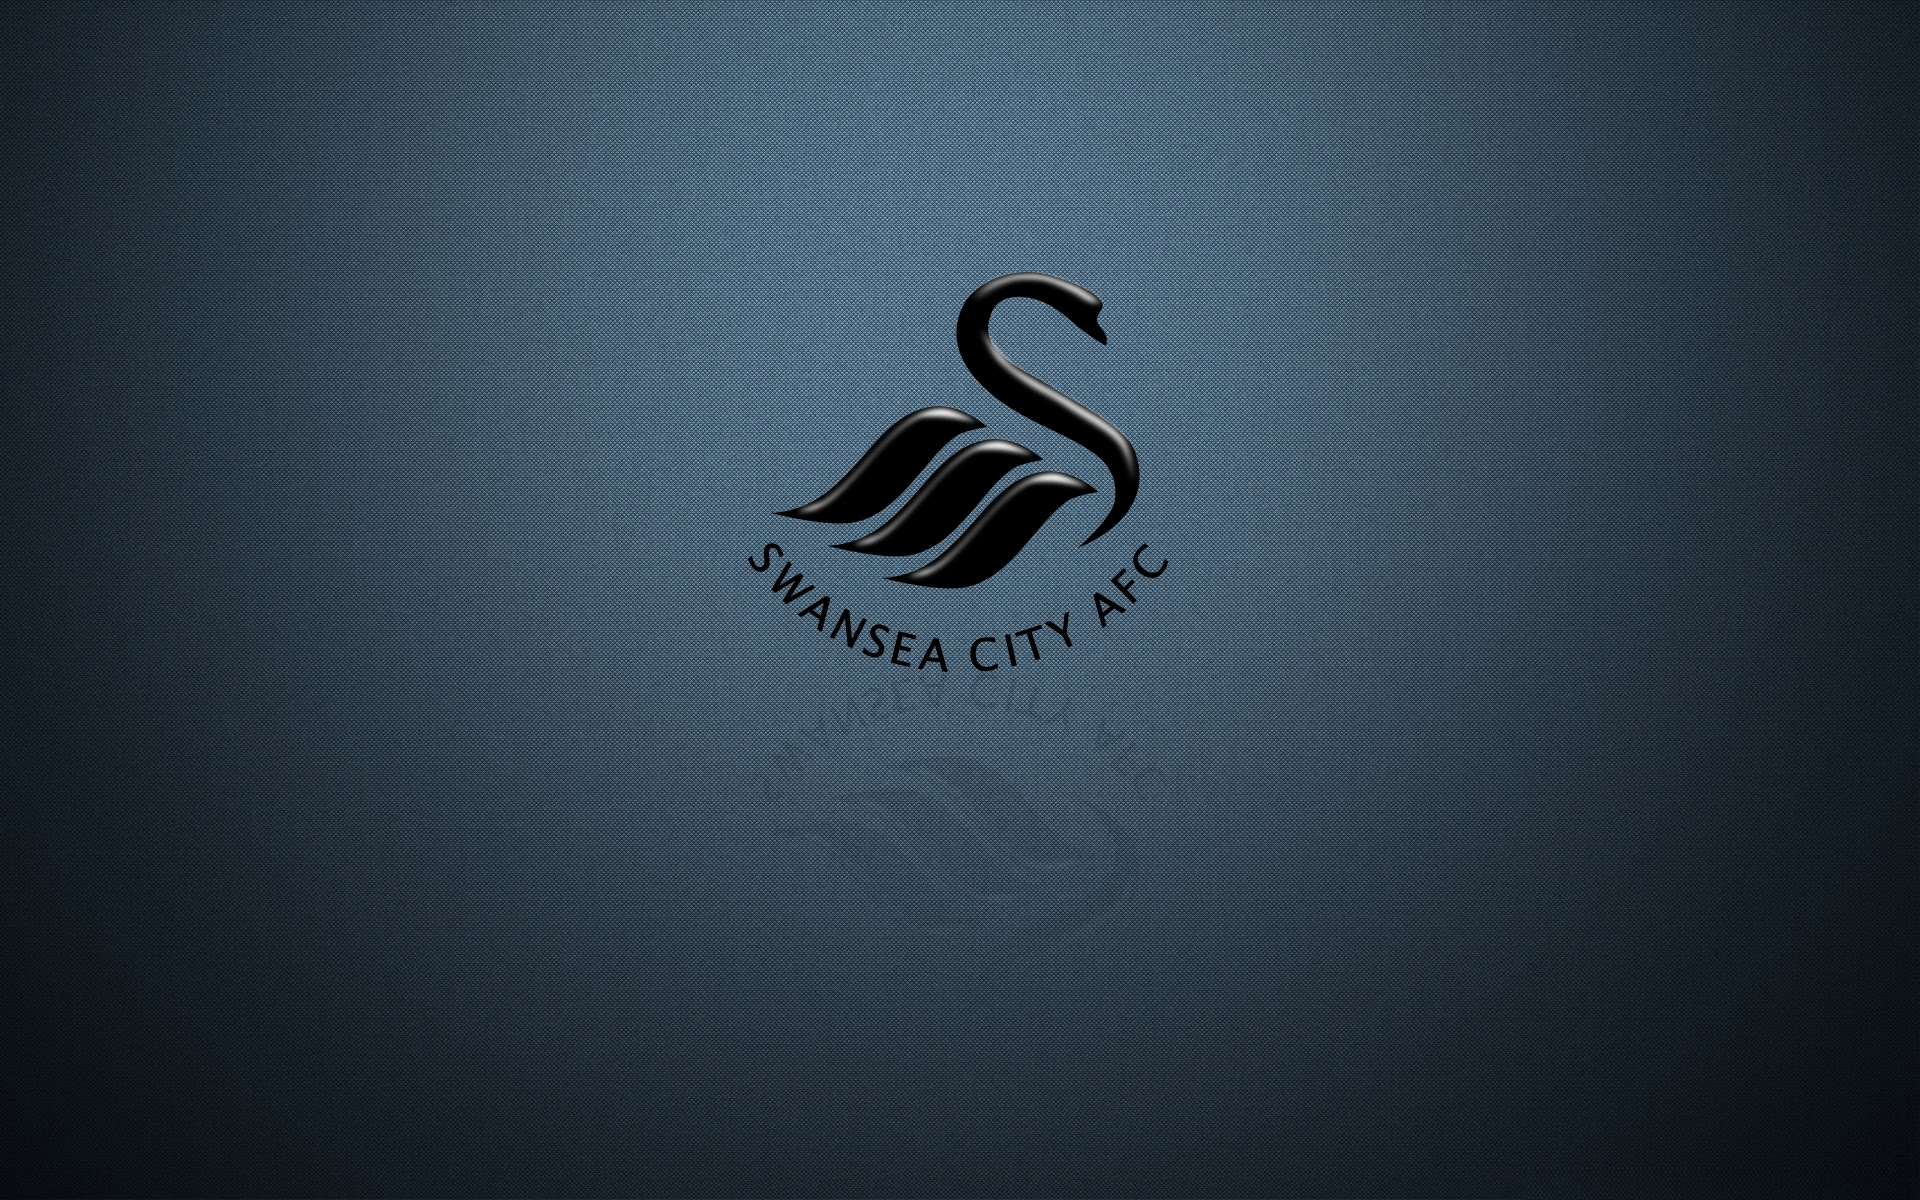 Swansea City Afc Logos Download